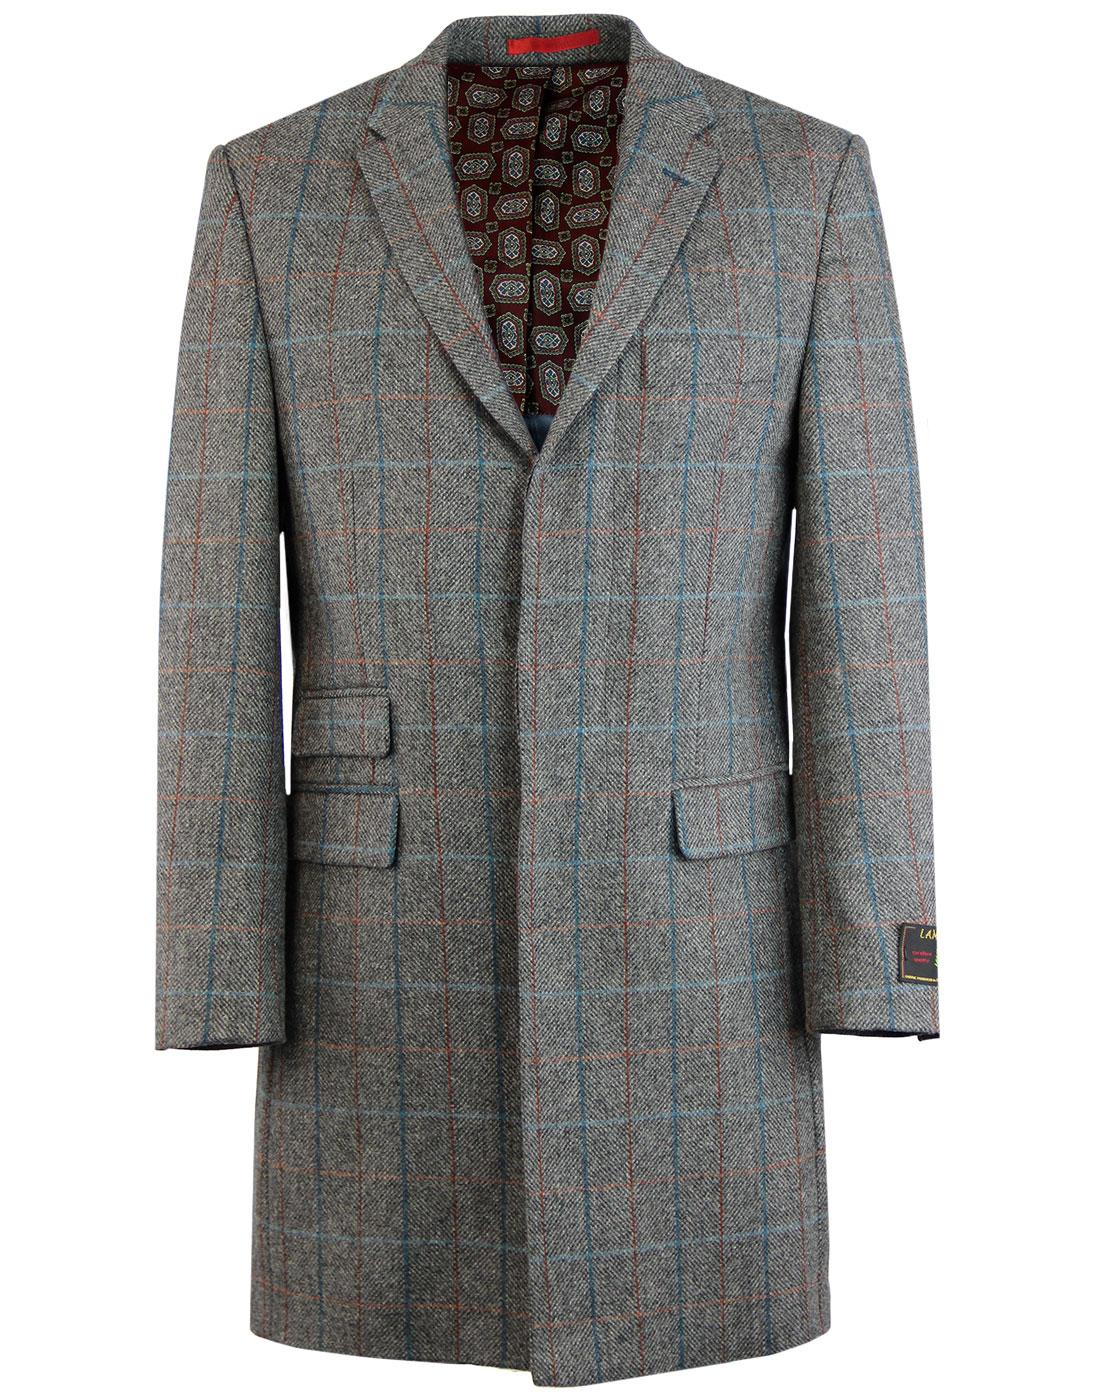 Mod Herringbone Check Three Quarter Length Coat